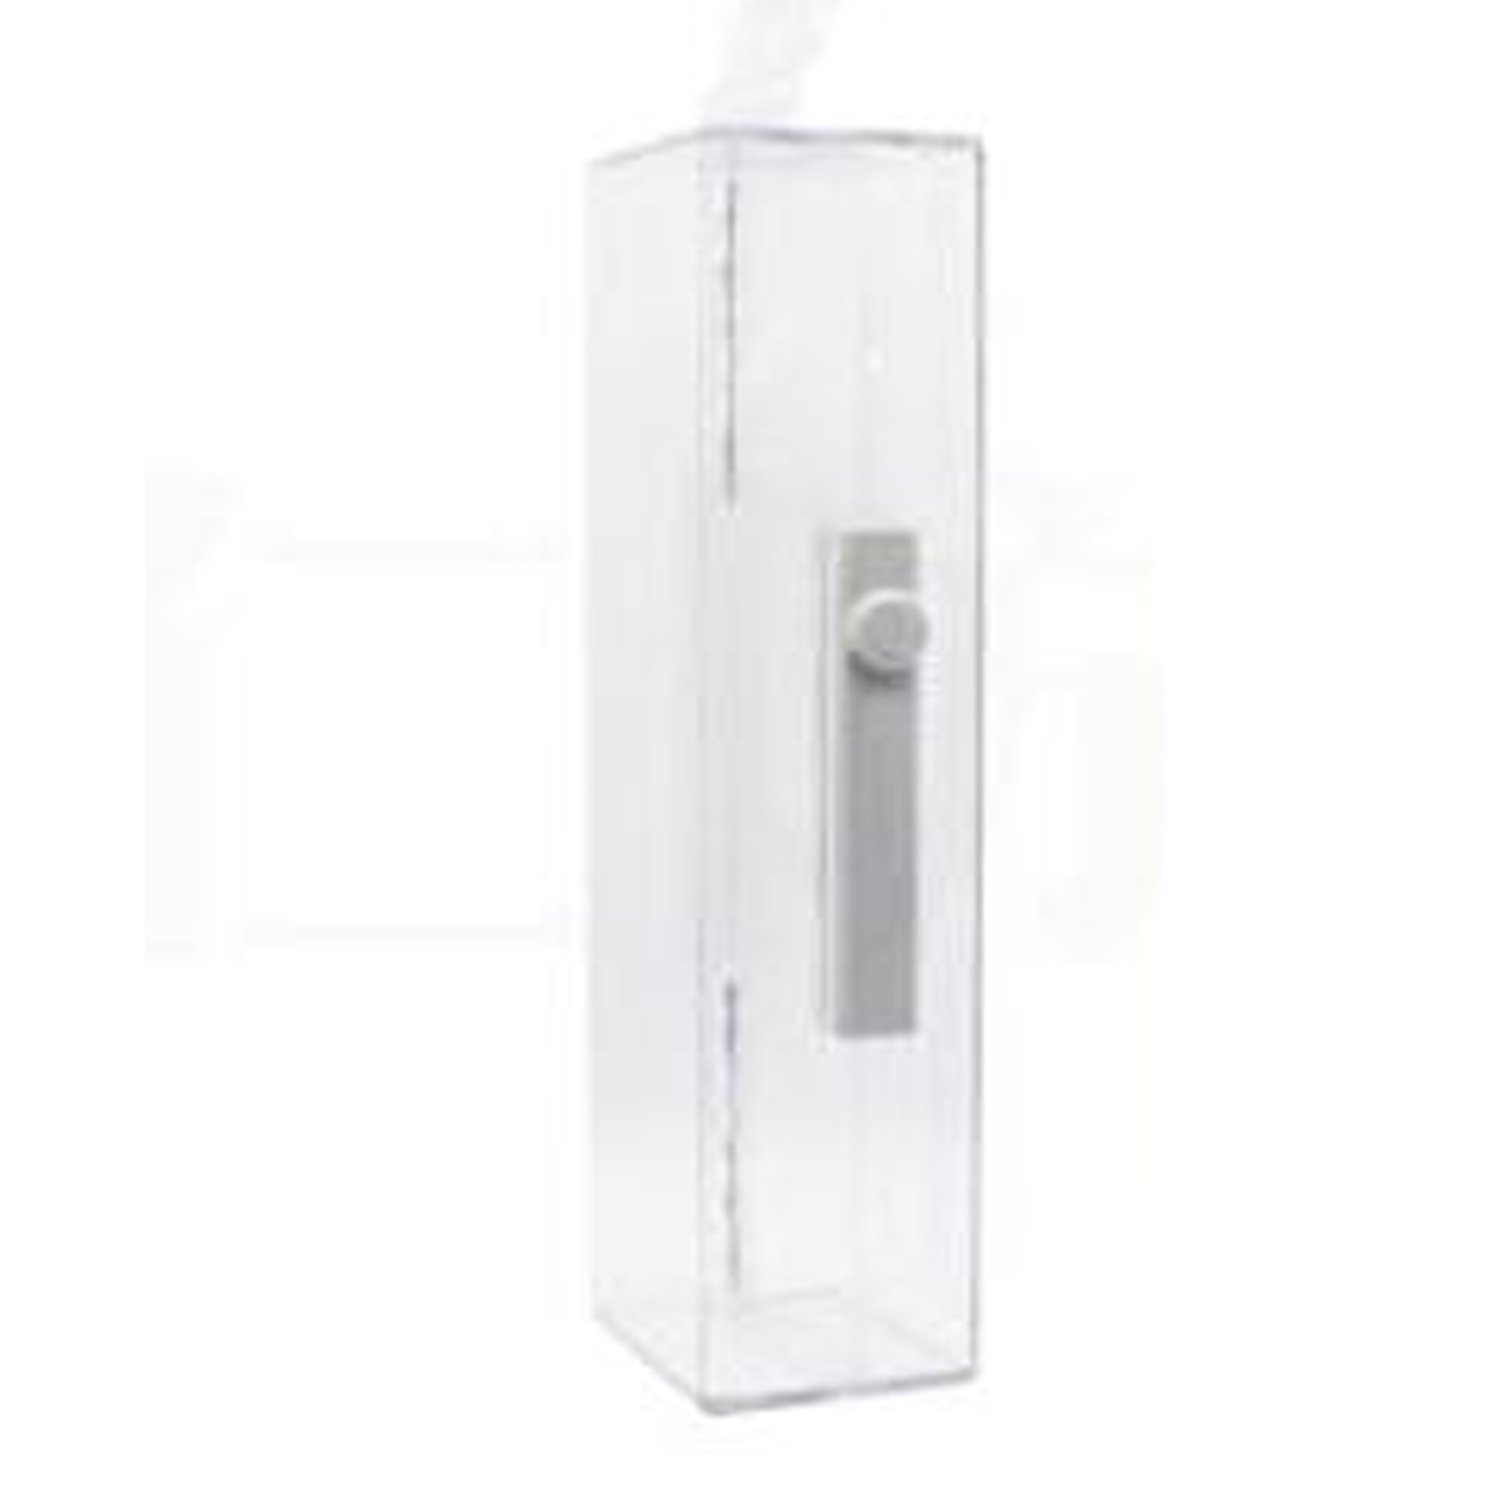 Security Box Tag, 100pcs/Box EAS Anti-theft Sensor Protection Boxes for Battery, Perfume,Chewing Gum,Razor Blade,Chocolate or other Display Valuable Products.(Size:248x60x50mm) by SupeRight